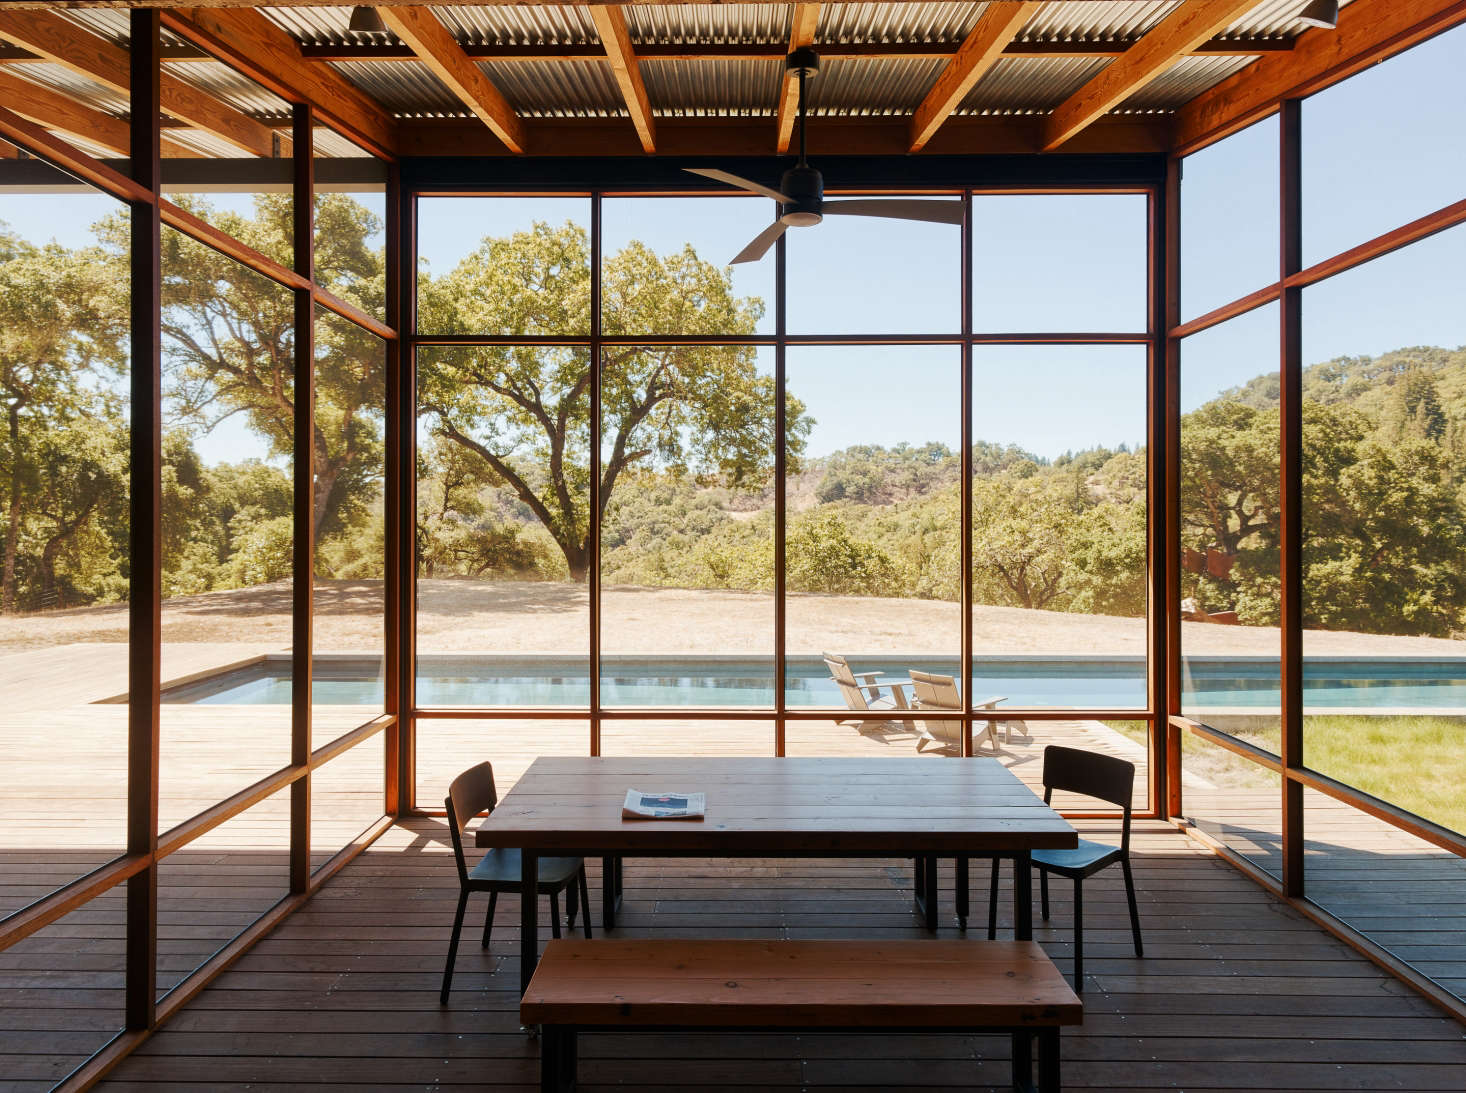 A screened dining porch by architect Malcolm Davis overlooks the pool. Both the decking and screen frame are made of rot-resistant ipe wood, while the building's framing lumber is Douglas fir. Photograph courtesy of Malcolm Davis, from Swimming Pool of the Week: A Rustic Family Campground—with a Lap Pool.